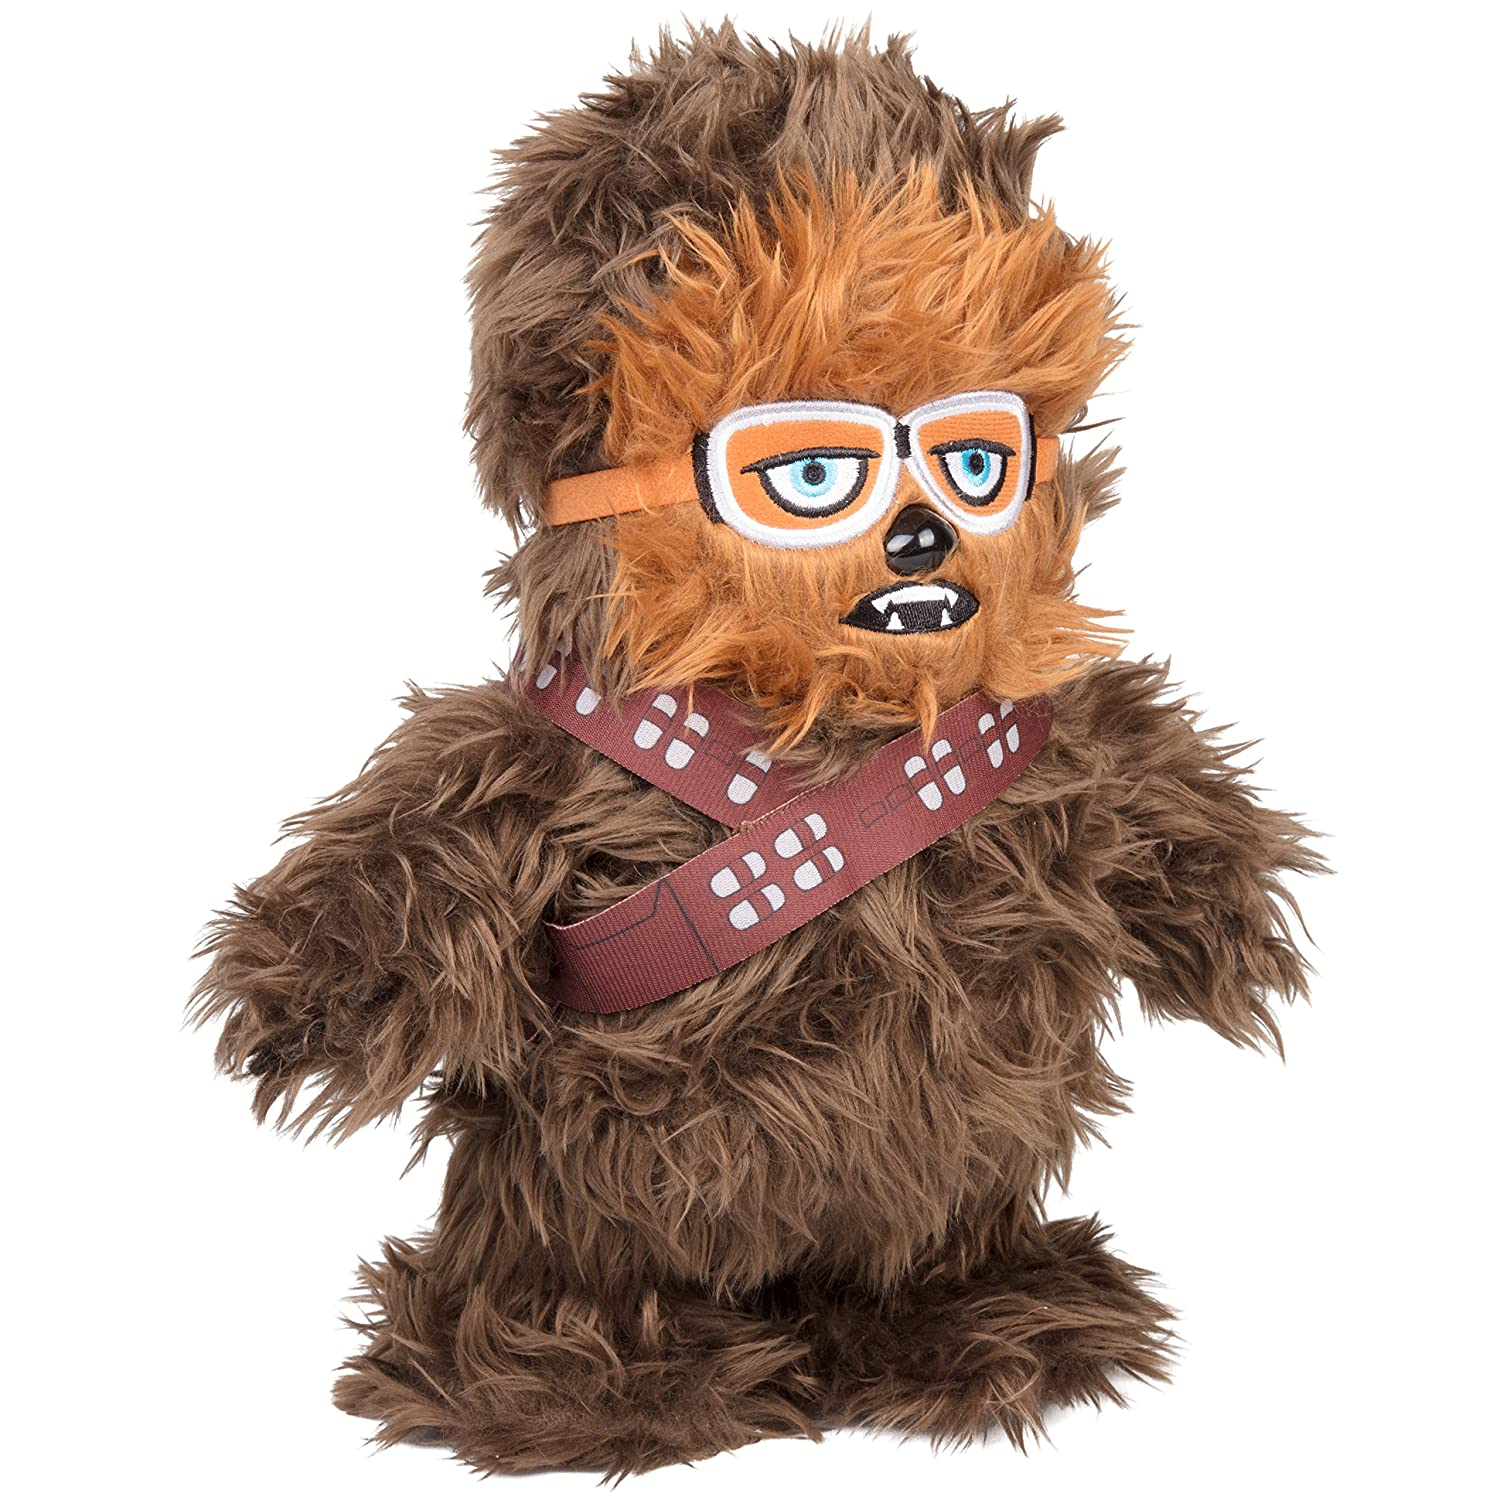 SCS Direct Star Wars Solo Movie Chewbacca Interactive Walk N' Roar 12 Plush Makes Wookiee Talking Sounds and Walks